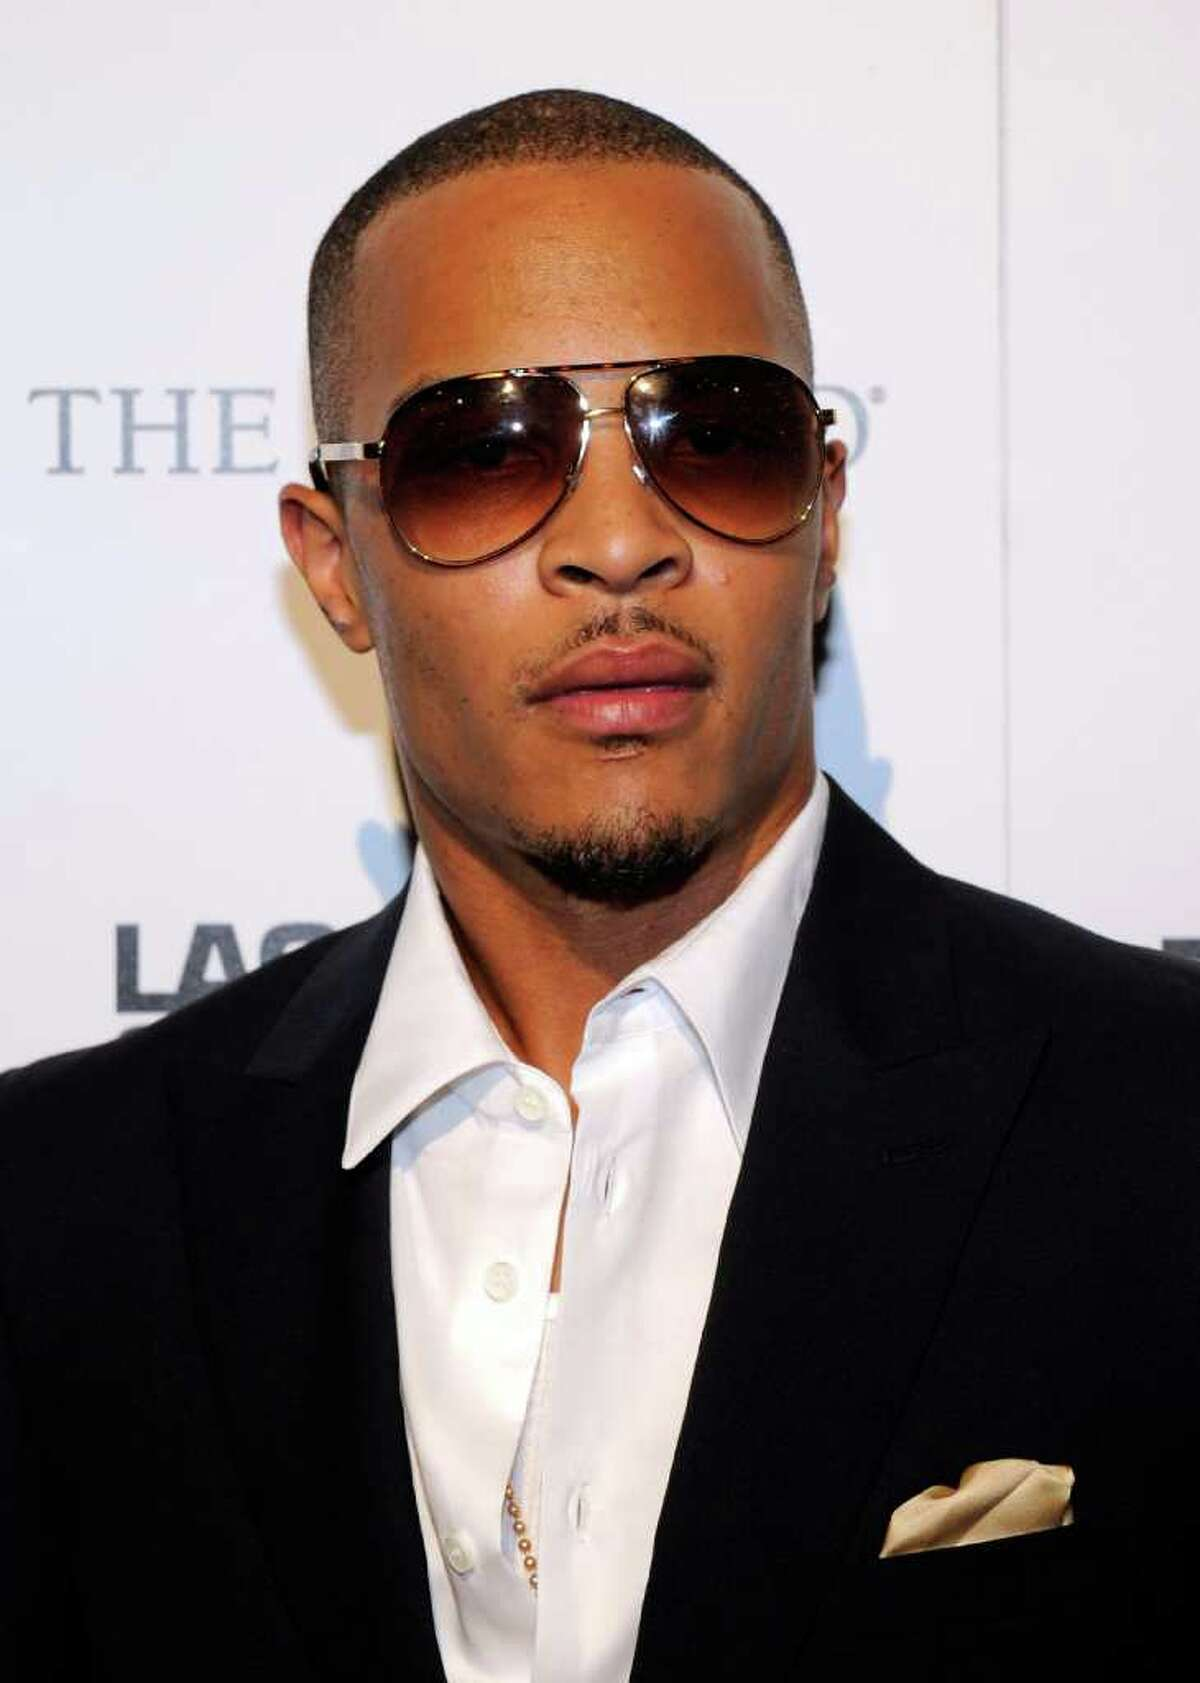 Though he's racked up jail time and multiple felony convictions, rapper T.I. has also done plenty of good. In 2010, he talked a suicidal Atlanta man off the ledge of a 22-story building. Reportedly, the rapper heard about the incident on the radio and immediately drove over to the building to see if he could help. While authorities wouldn't let him on the roof, T.I. used his phone to record a positive video message for the would-be jumper, who climbed back down the ground a short time later.